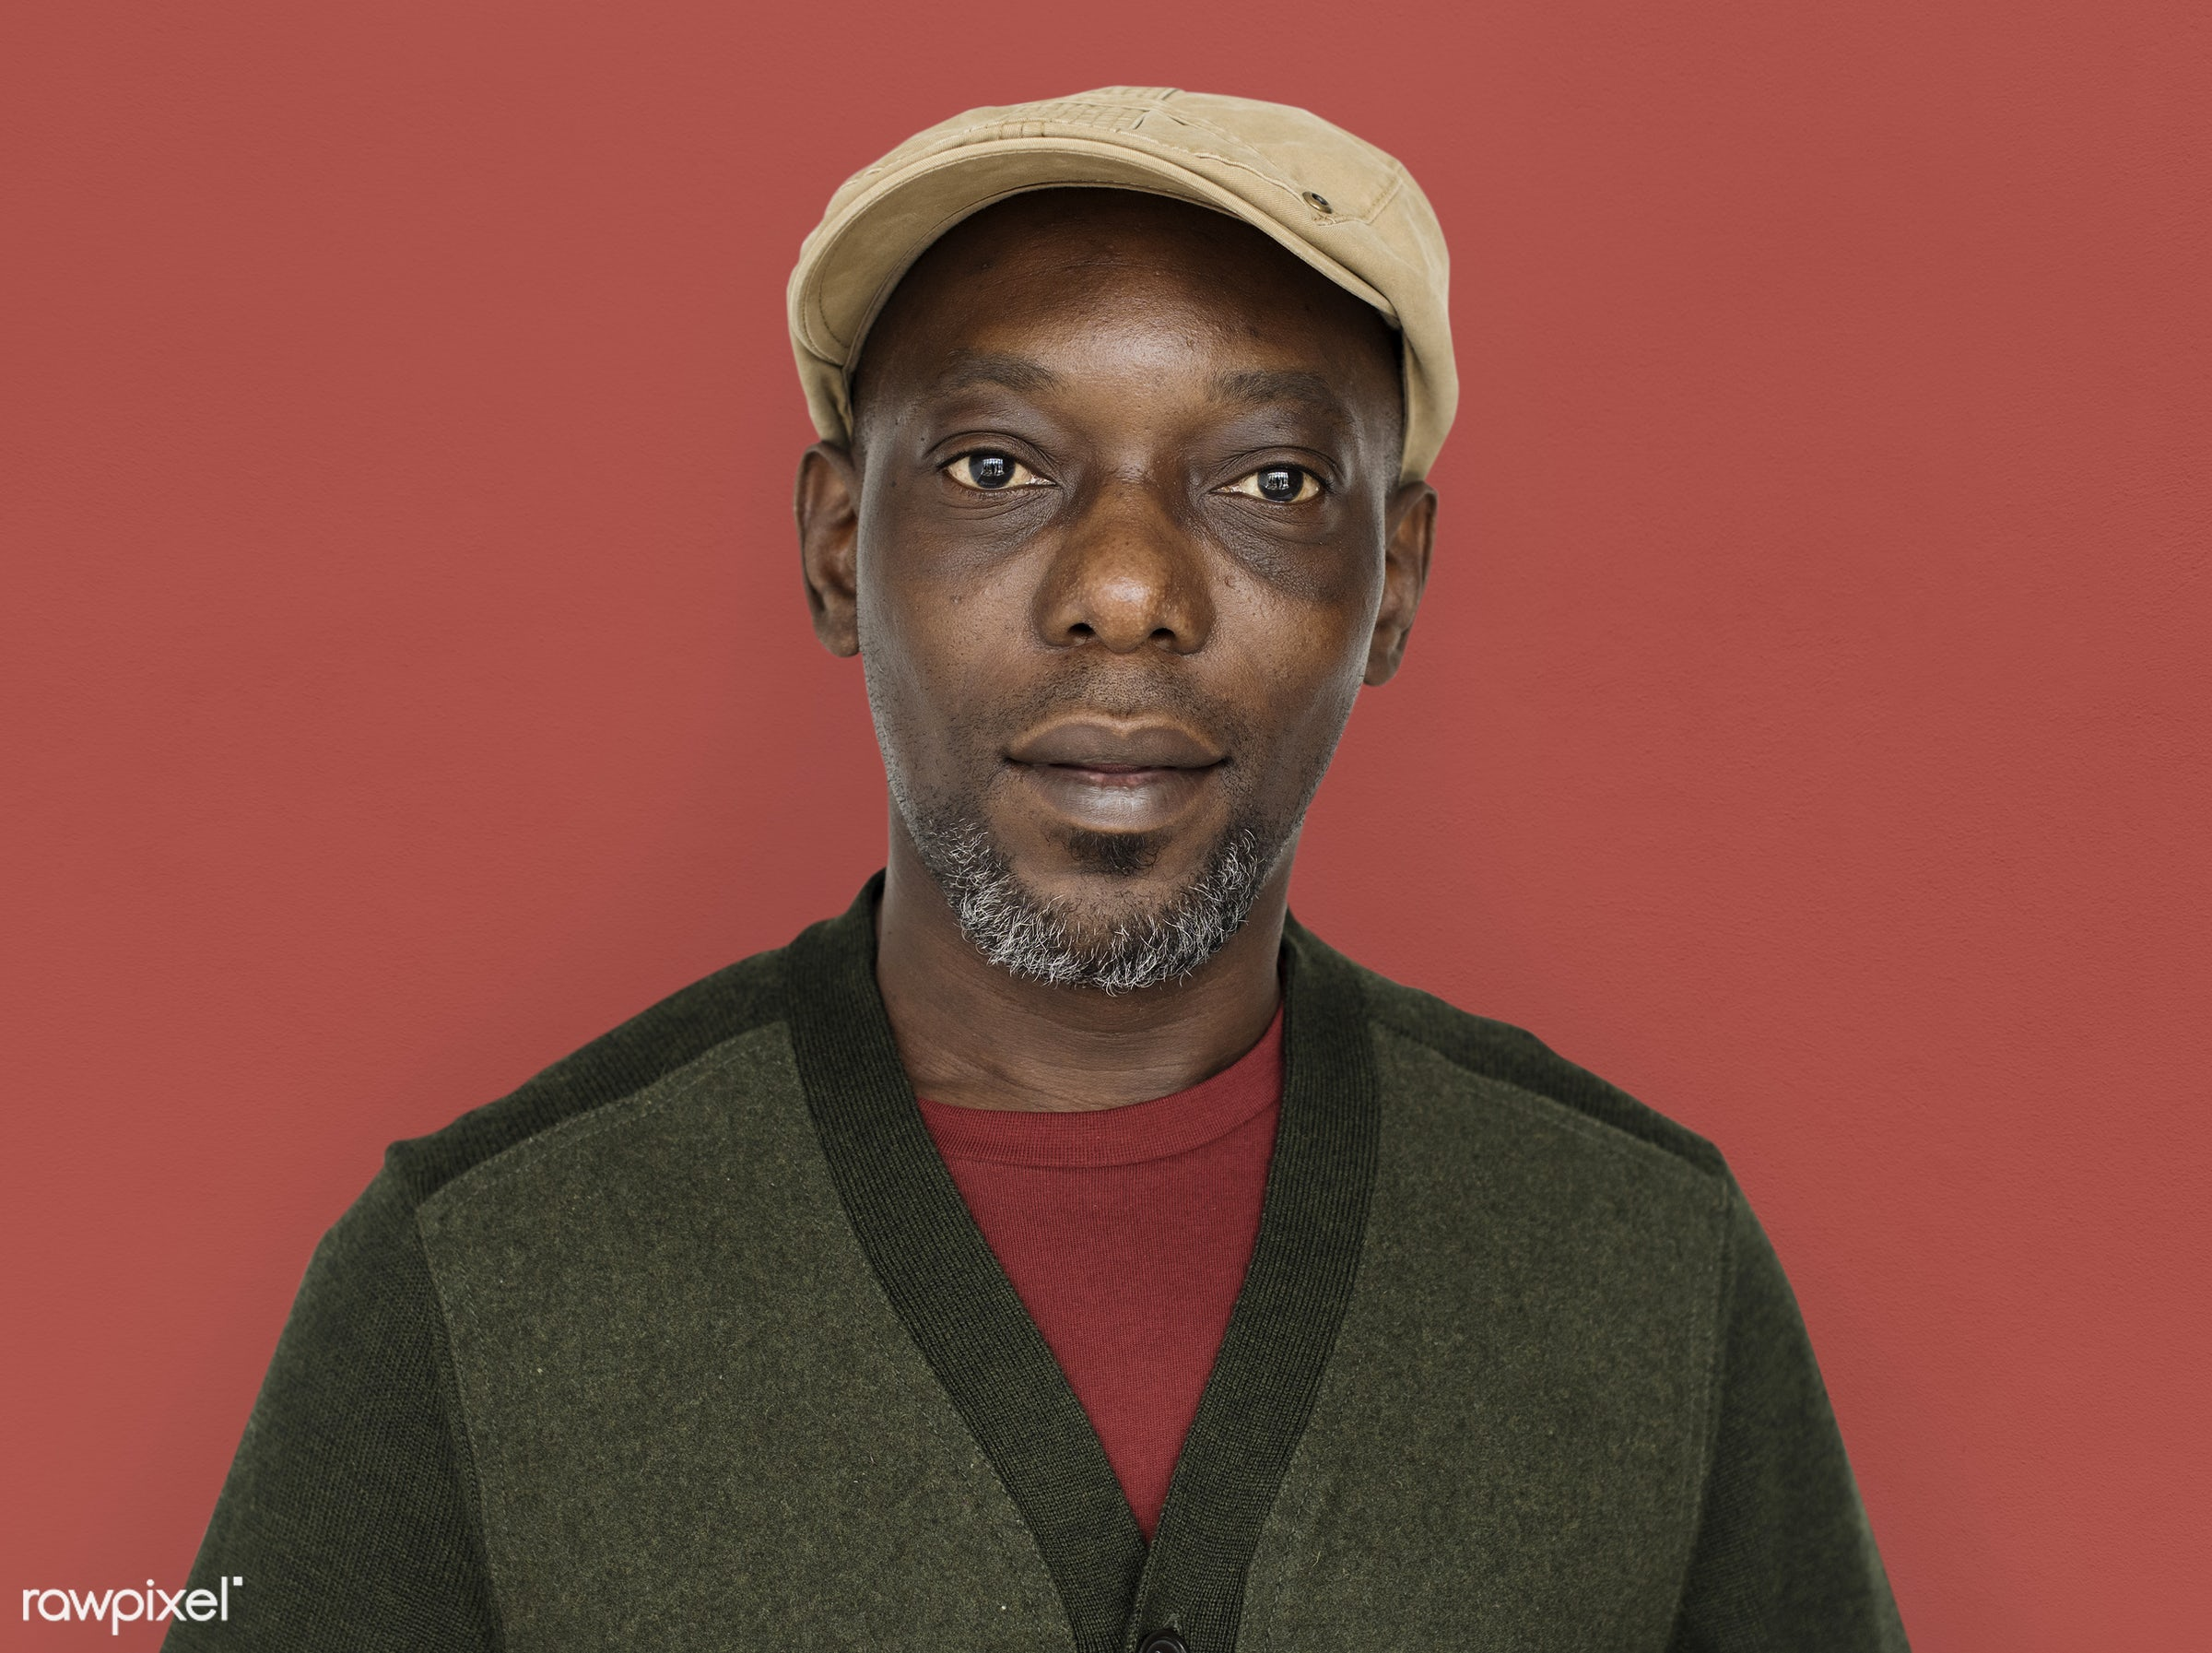 expression, old, person, wearing hat, people, hat, casual, smile, cheerful, smiling, man, black, isolated, african descent,...